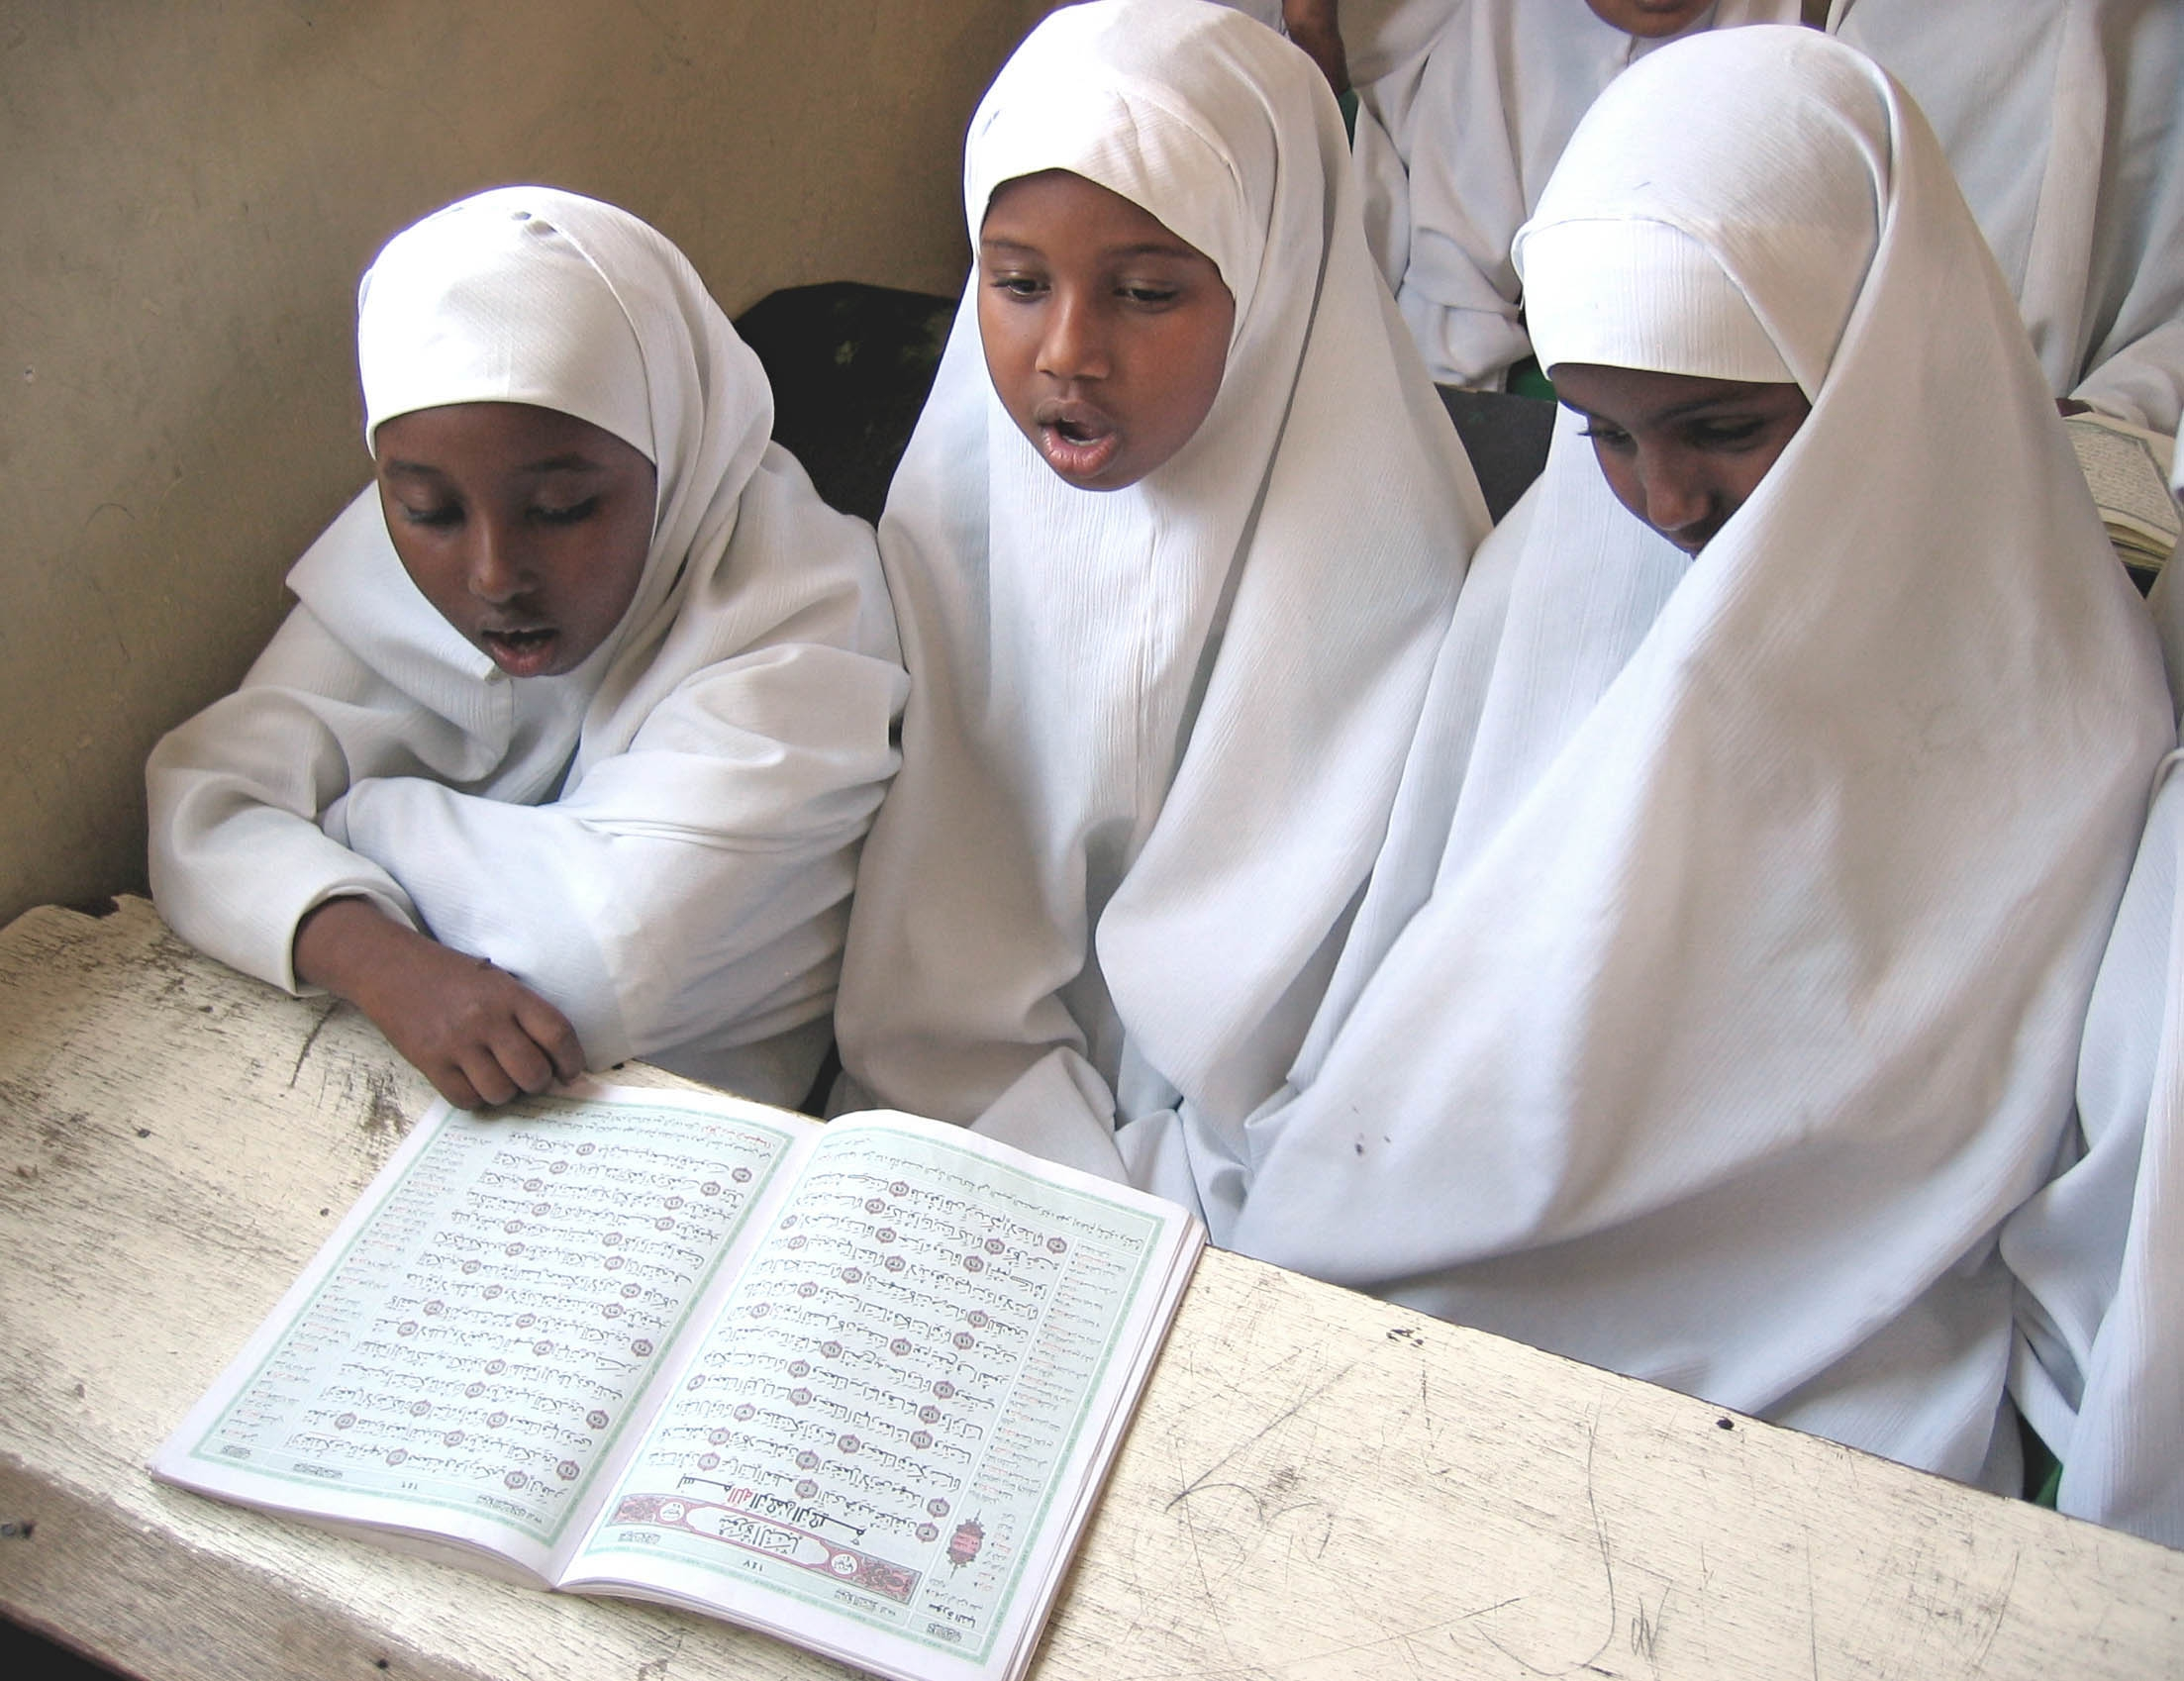 FILE - Students read the Koran during class at a primary school in Hargeisa, Somaliland, Sept. 25, 2006.